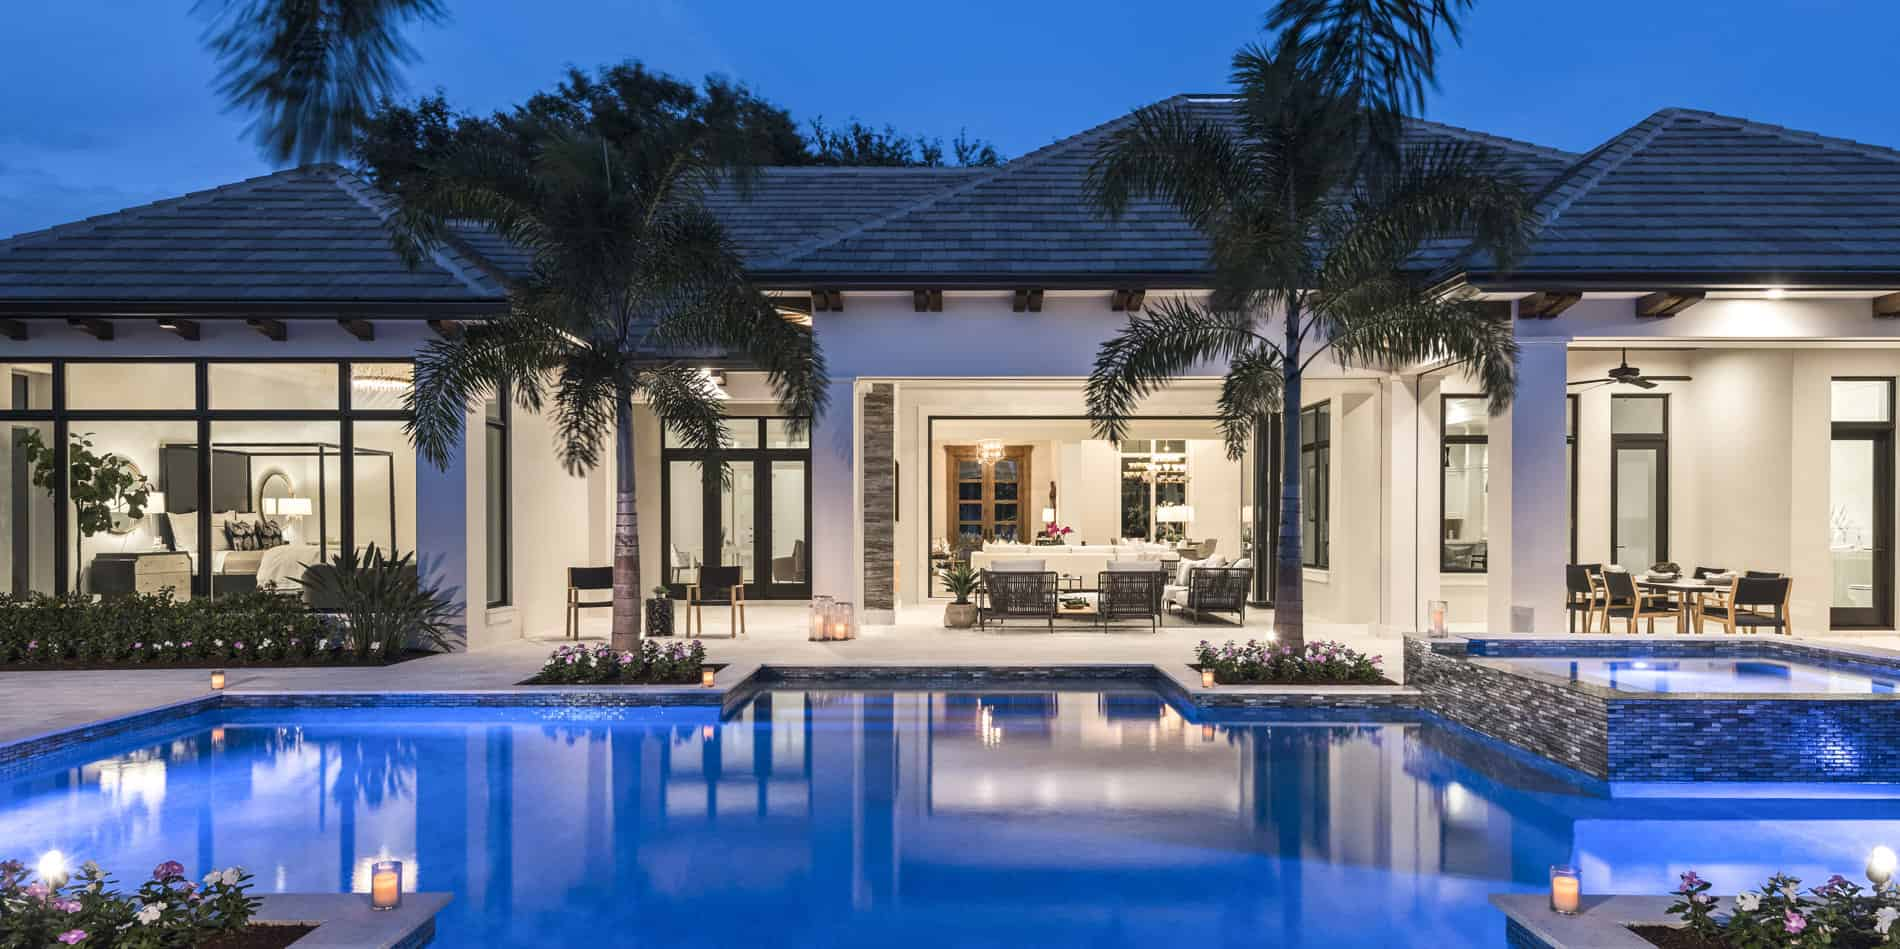 Naples Real Estate, Naples Properties, Pelican Bay homes for sale, Pelican Bay new construction, Pelican Bay realtors, Pelican Bay real estate, Pelican Bay real estate listings, Pelican Bay Golf and Country Club, Pelican Bay Naples, Pelican Bay Properties